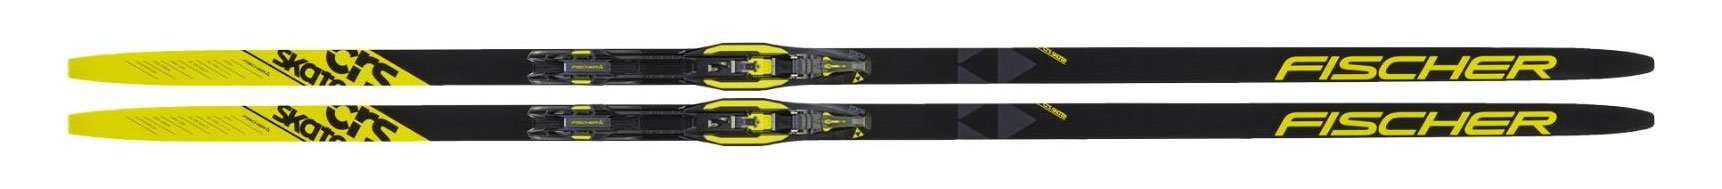 Fischer CRS Skate Skis with TURNAMIC Bindings